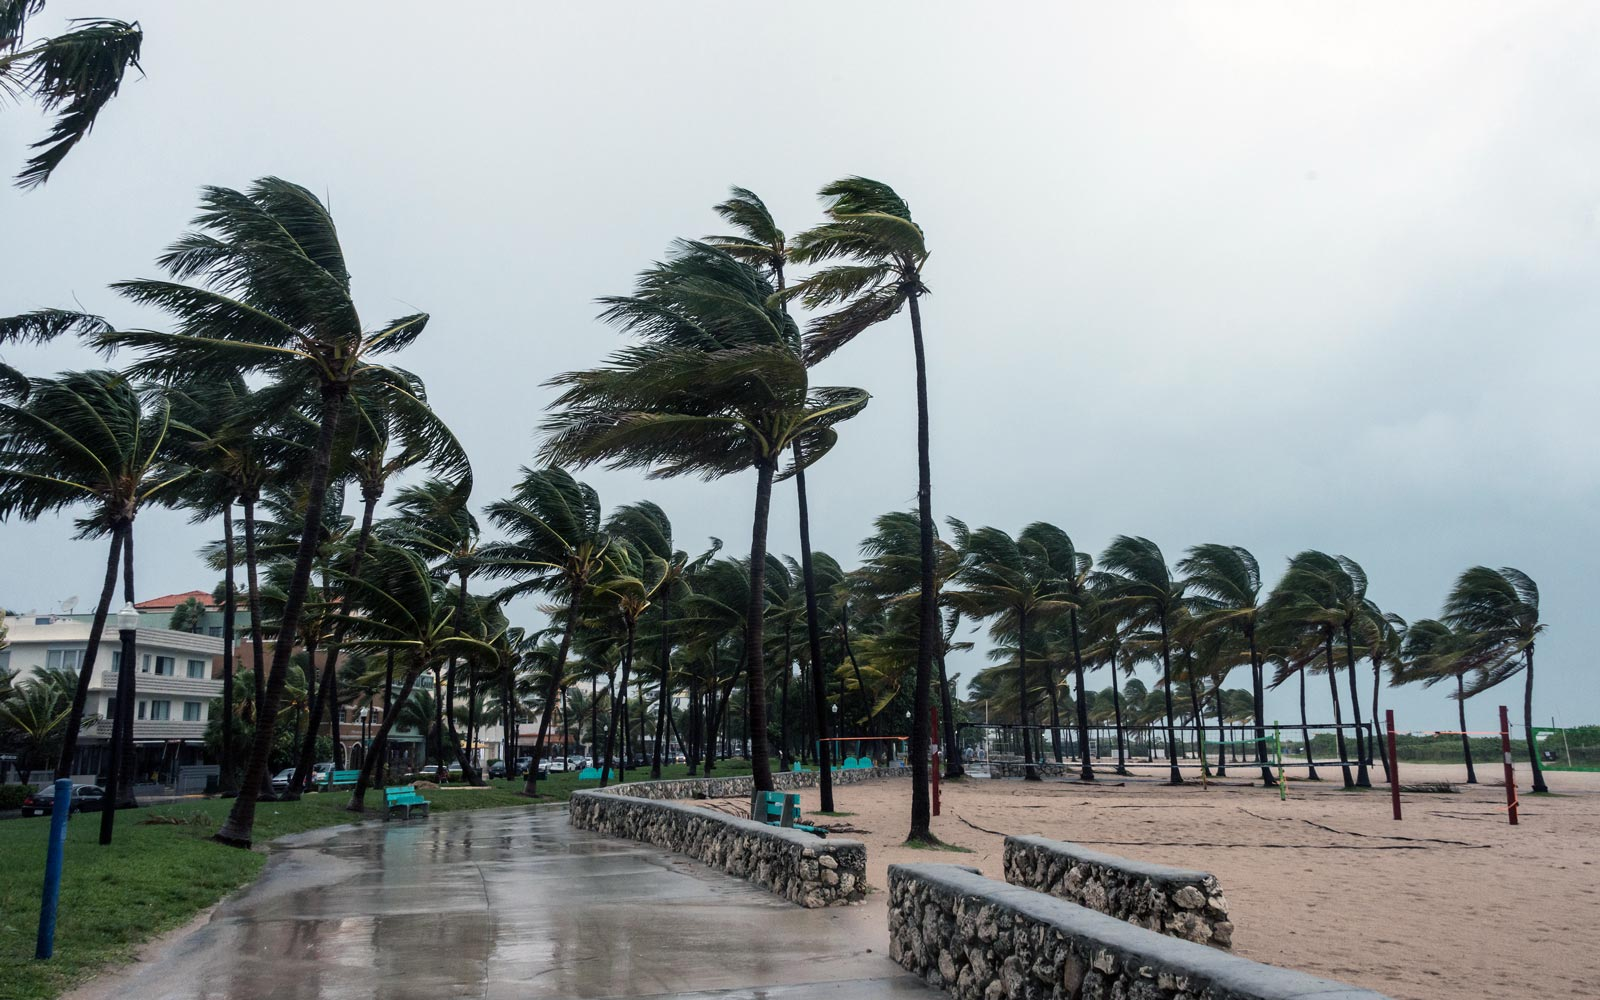 Drenched walkway with palm trees with fronds blown sideways by wind at a Gulf Coast beachside area during a substantial storm.